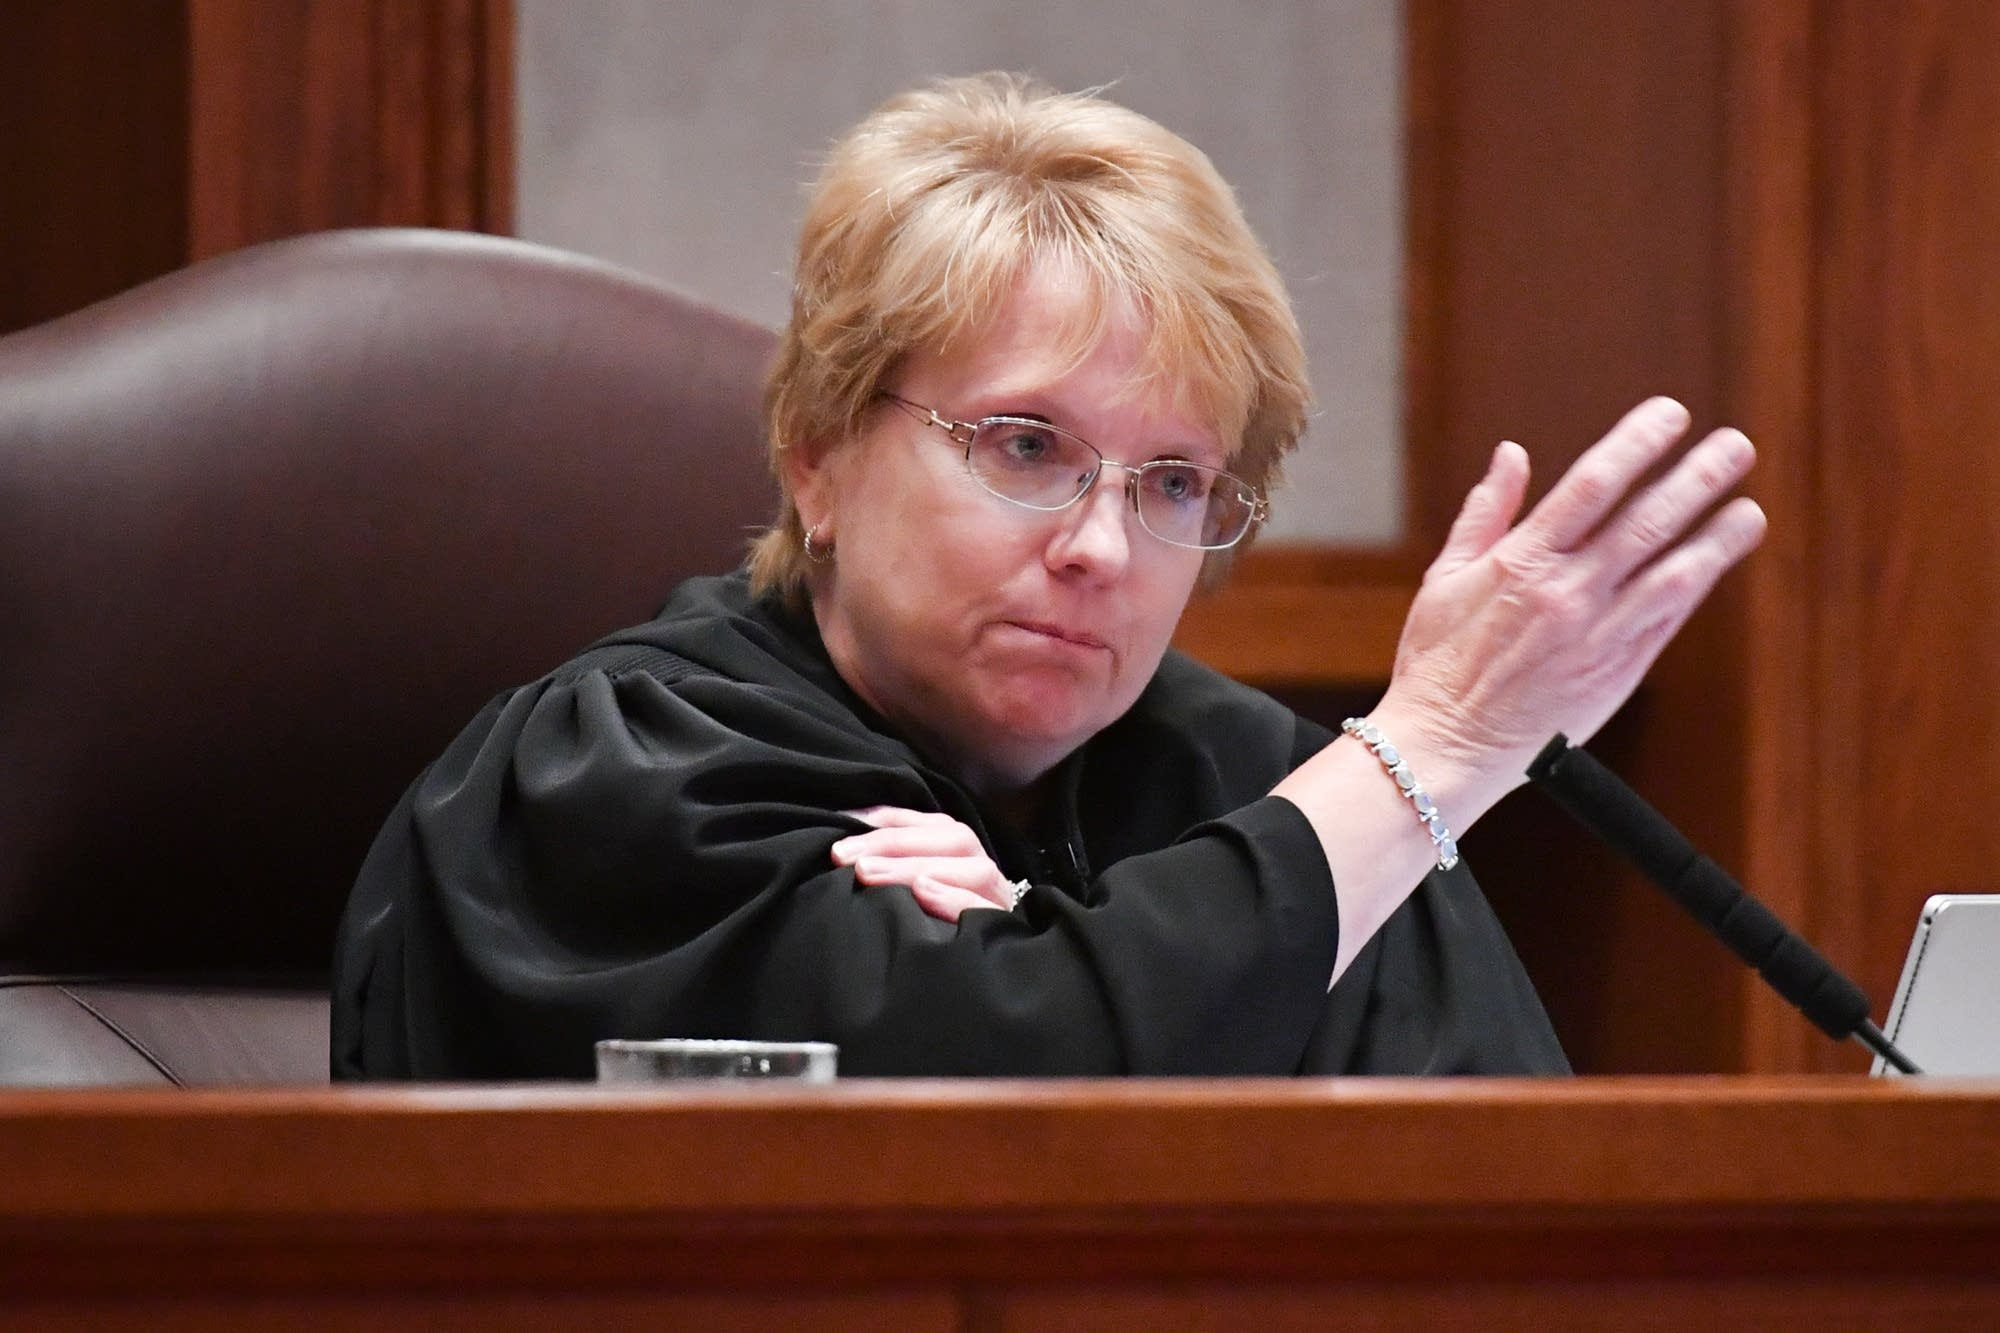 Chief Justice Lorie Skjerven Gildea